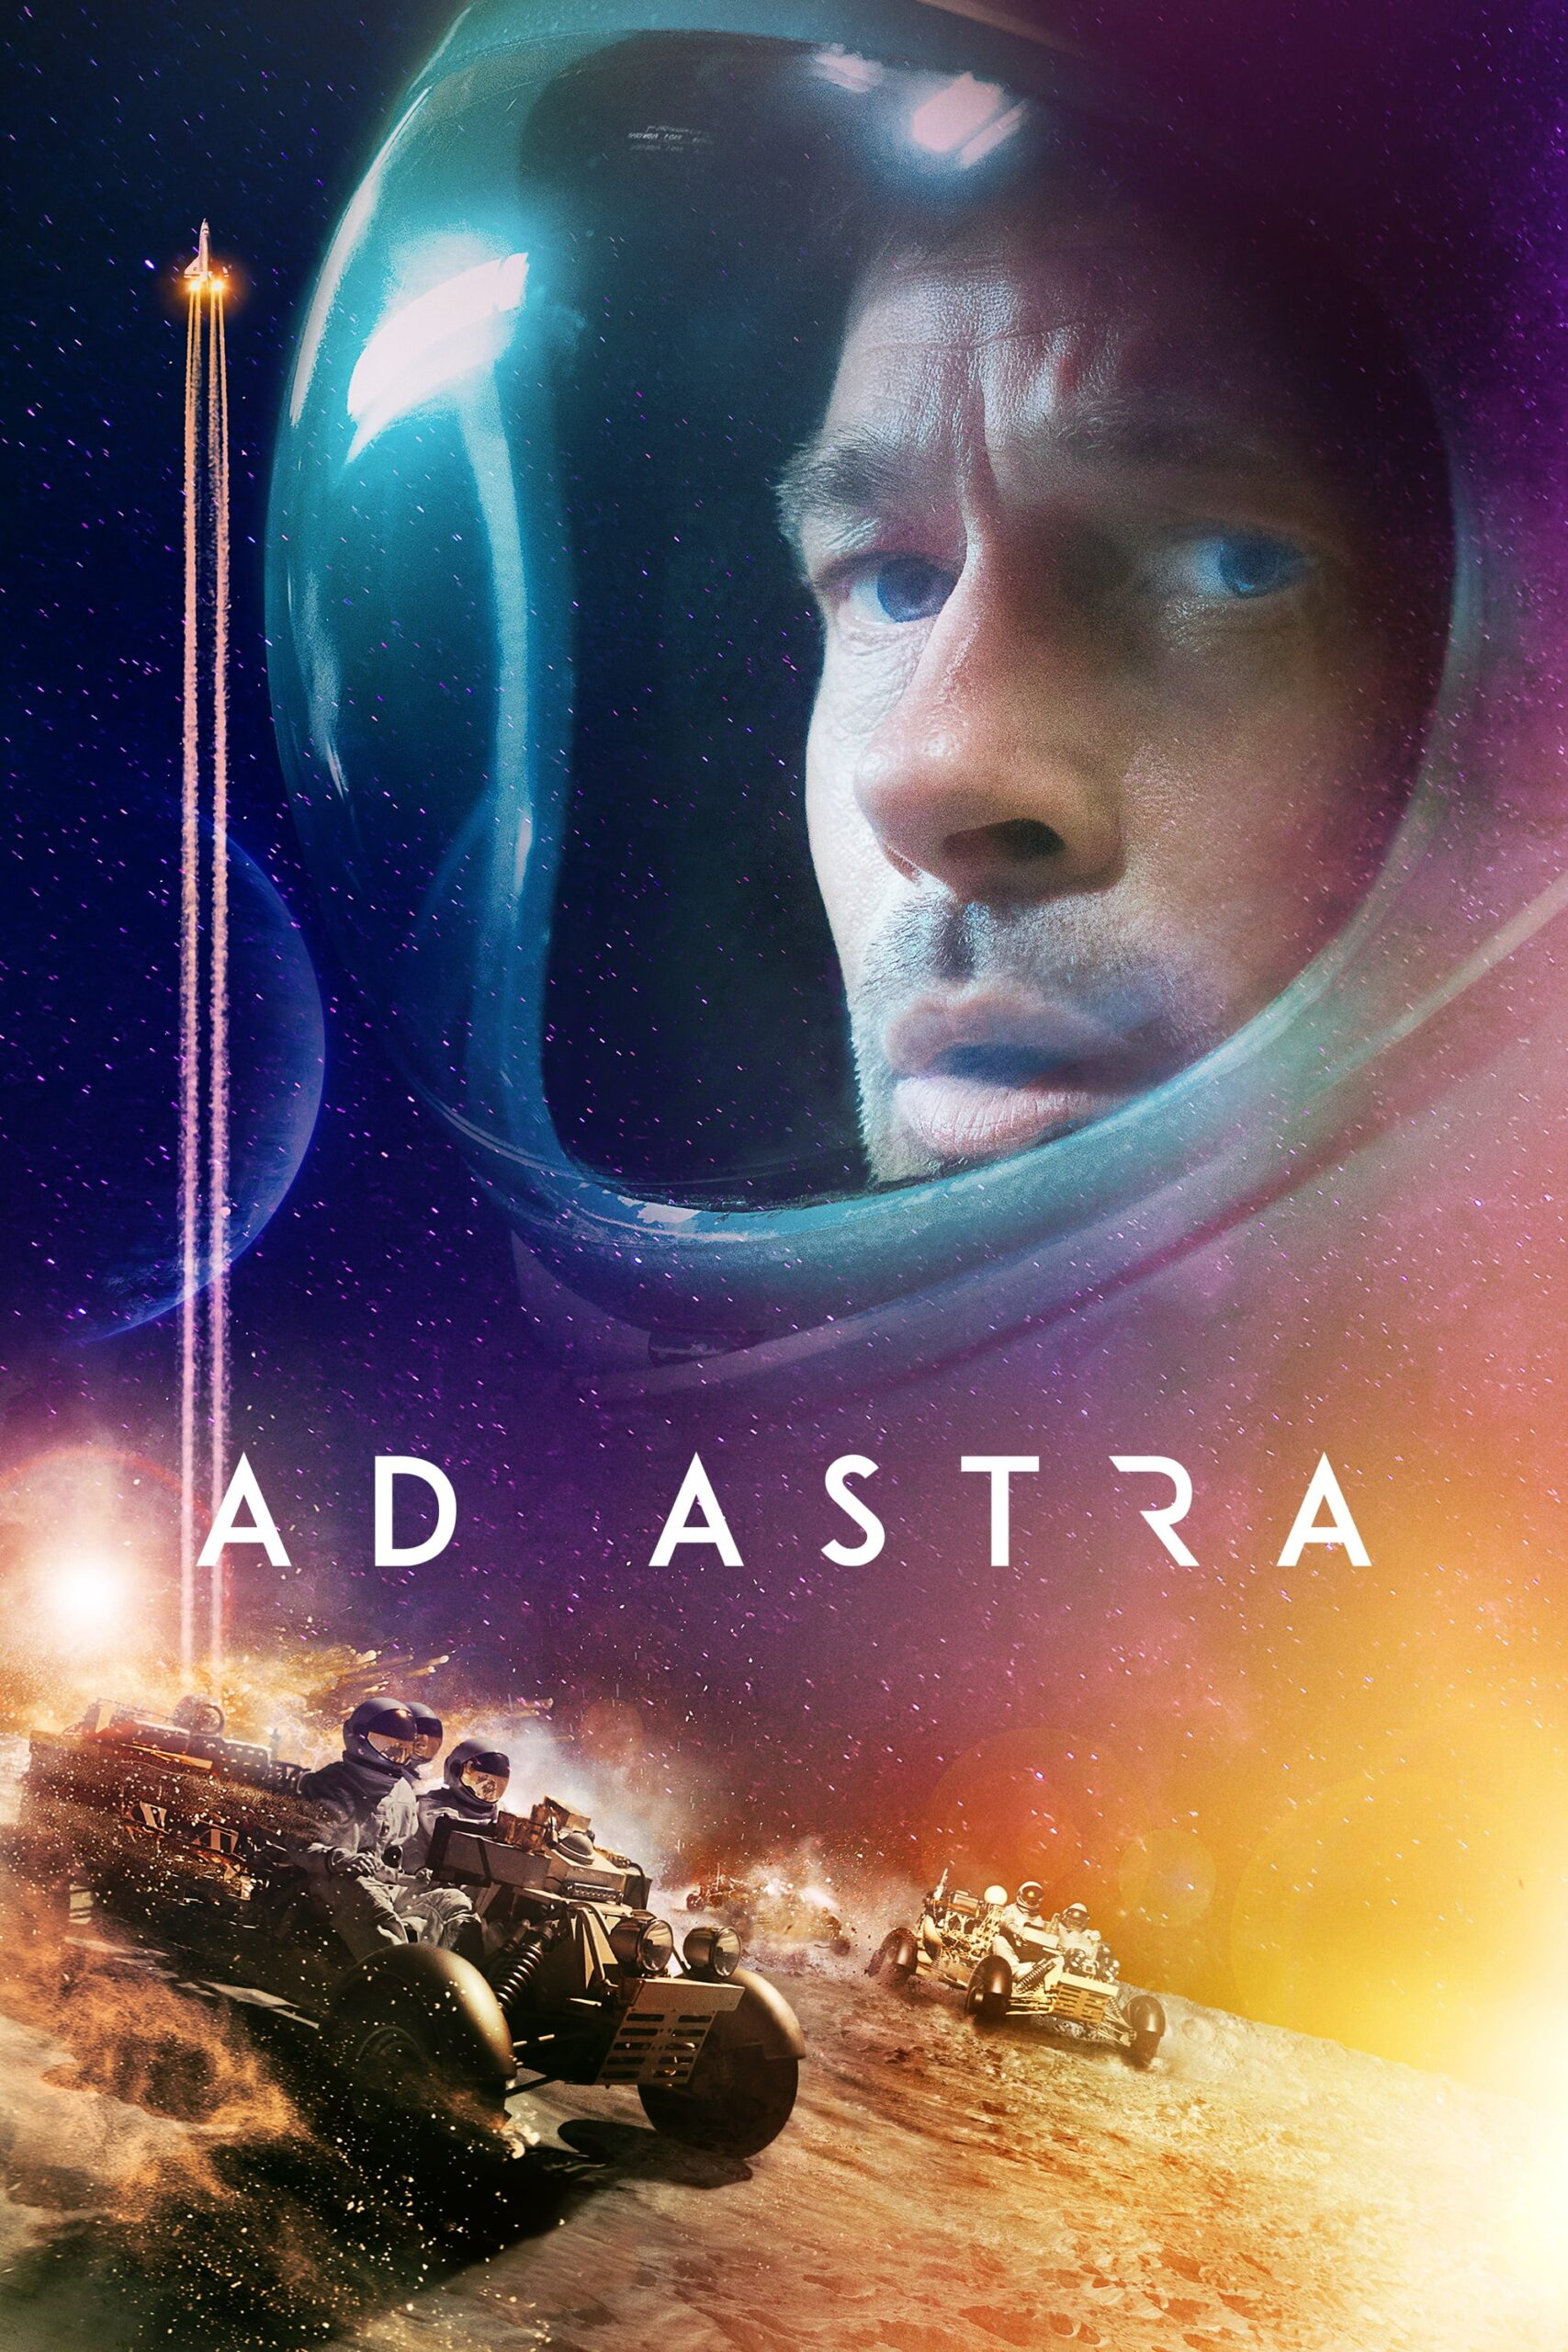 Ad Astra Movie Streaming Online Watch on Disney Plus Hotstar